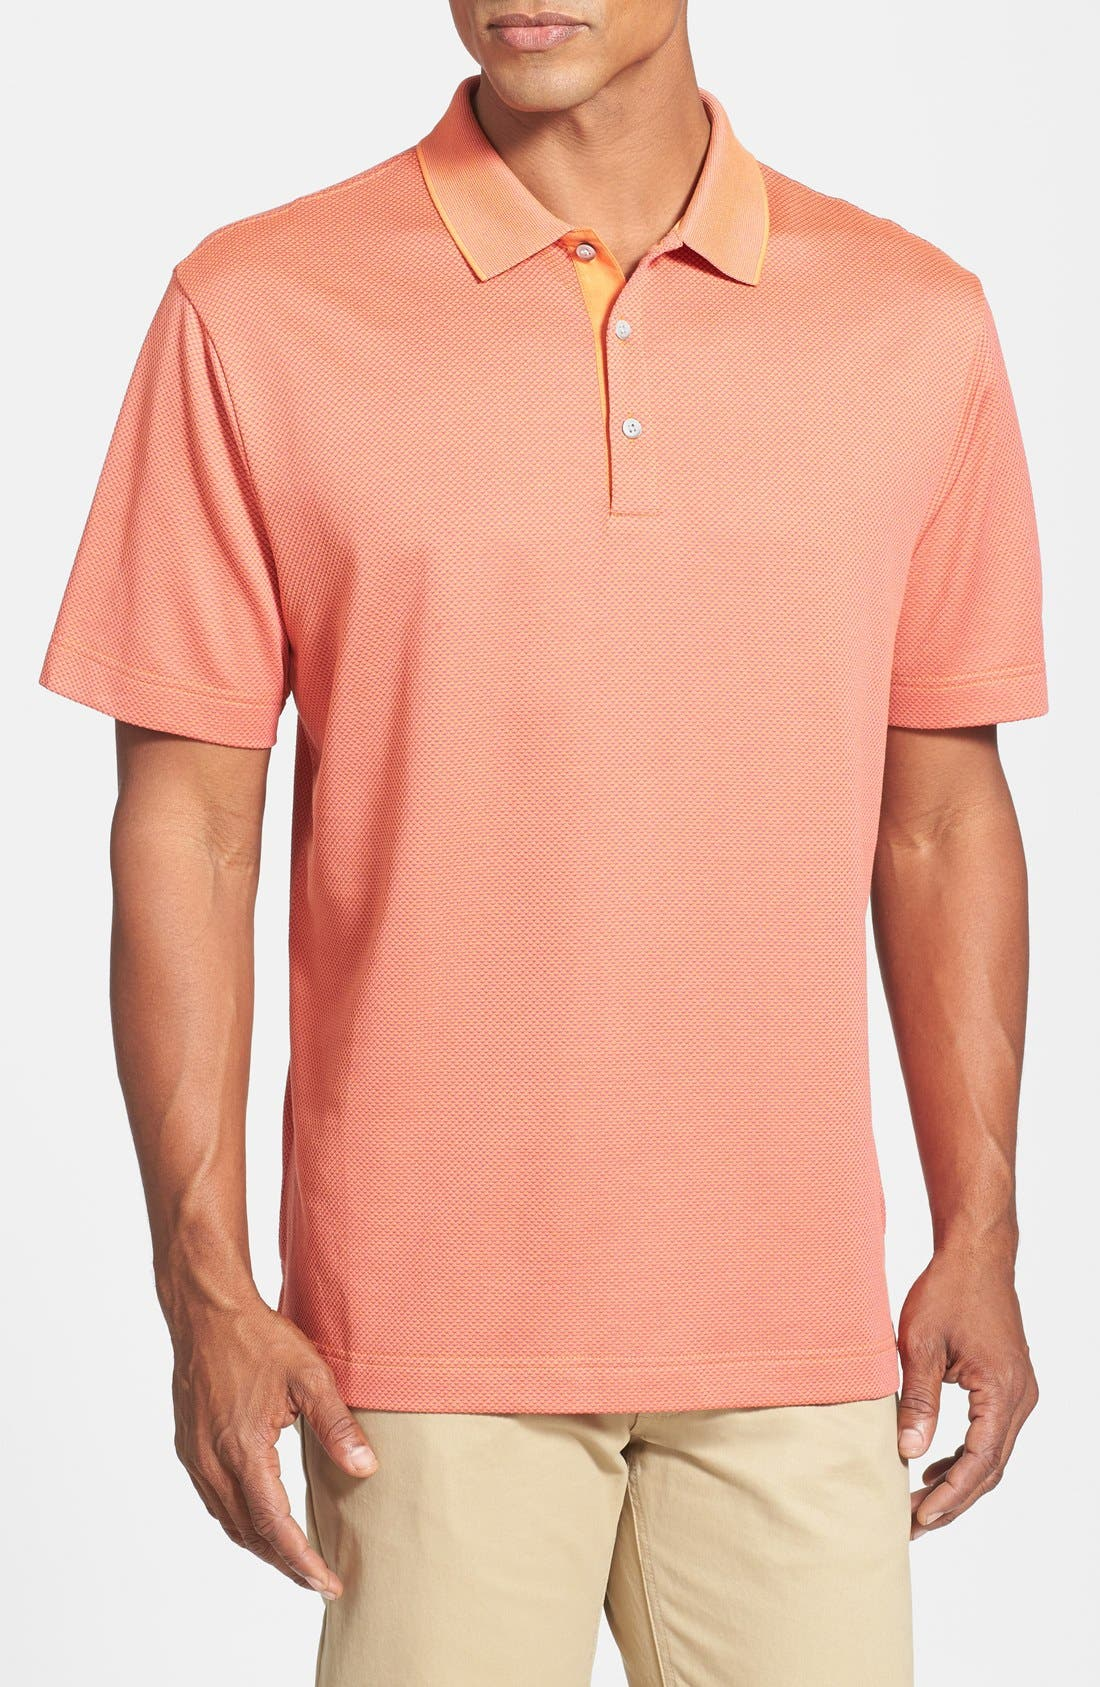 Alternate Image 1 Selected - Cutter & Buck 'Nano' Wrinkle Free DryTec Golf Polo (Big & Tall)